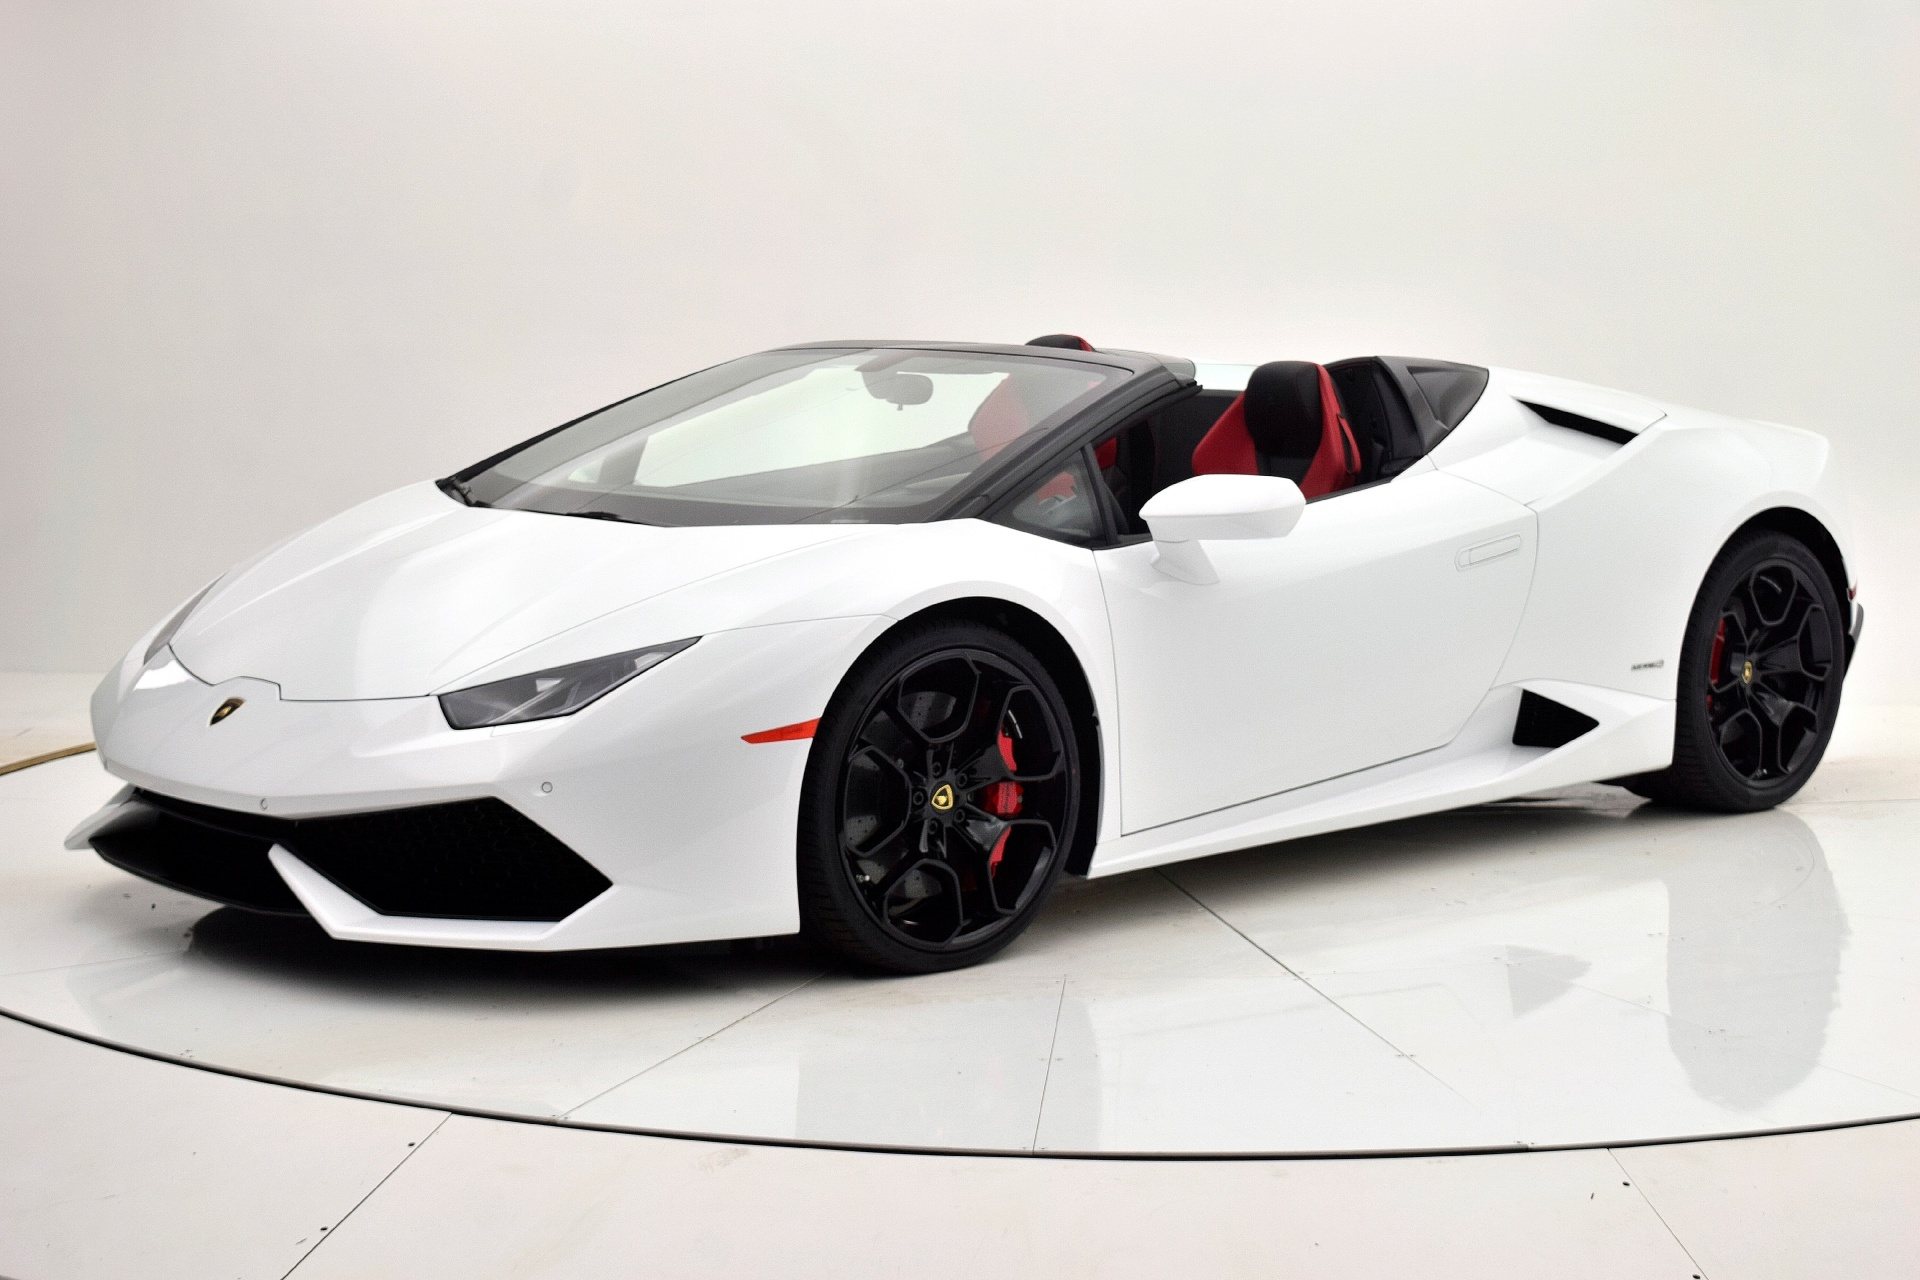 Used 2016 Lamborghini Huracan LP 610-4 Spyder for sale Sold at F.C. Kerbeck Aston Martin in Palmyra NJ 08065 2